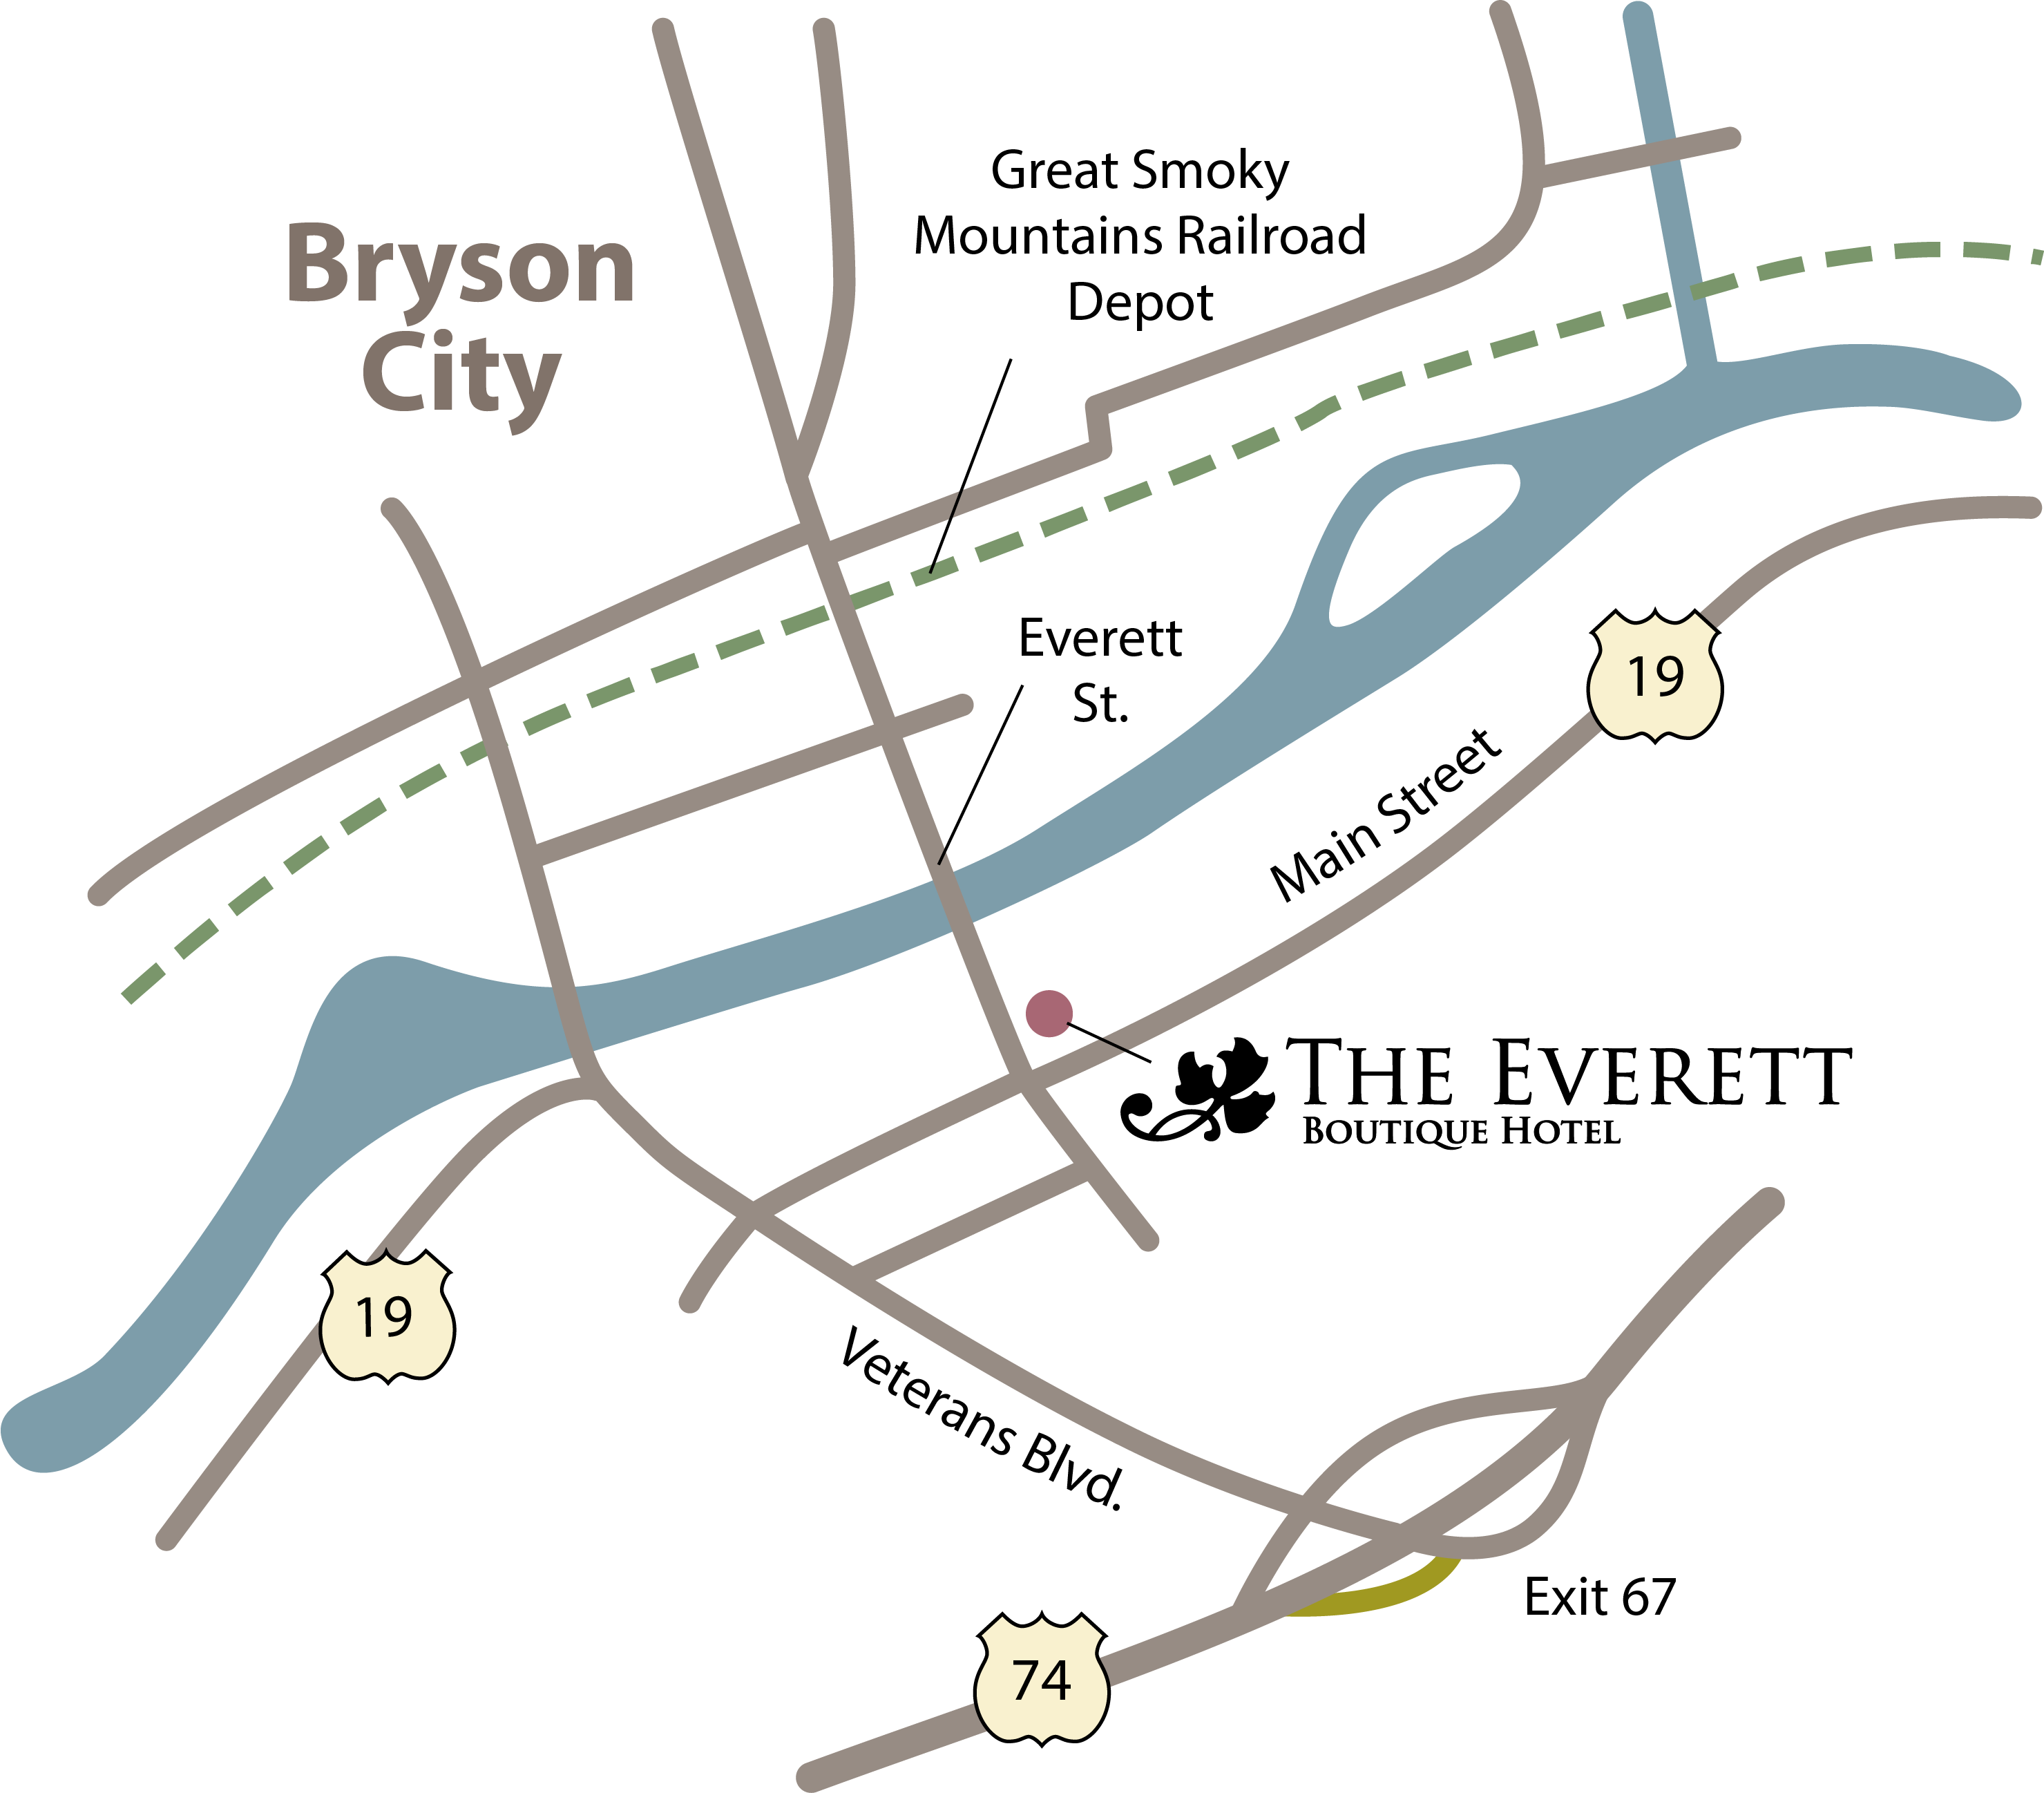 Bryson City map with Everett Hotel location